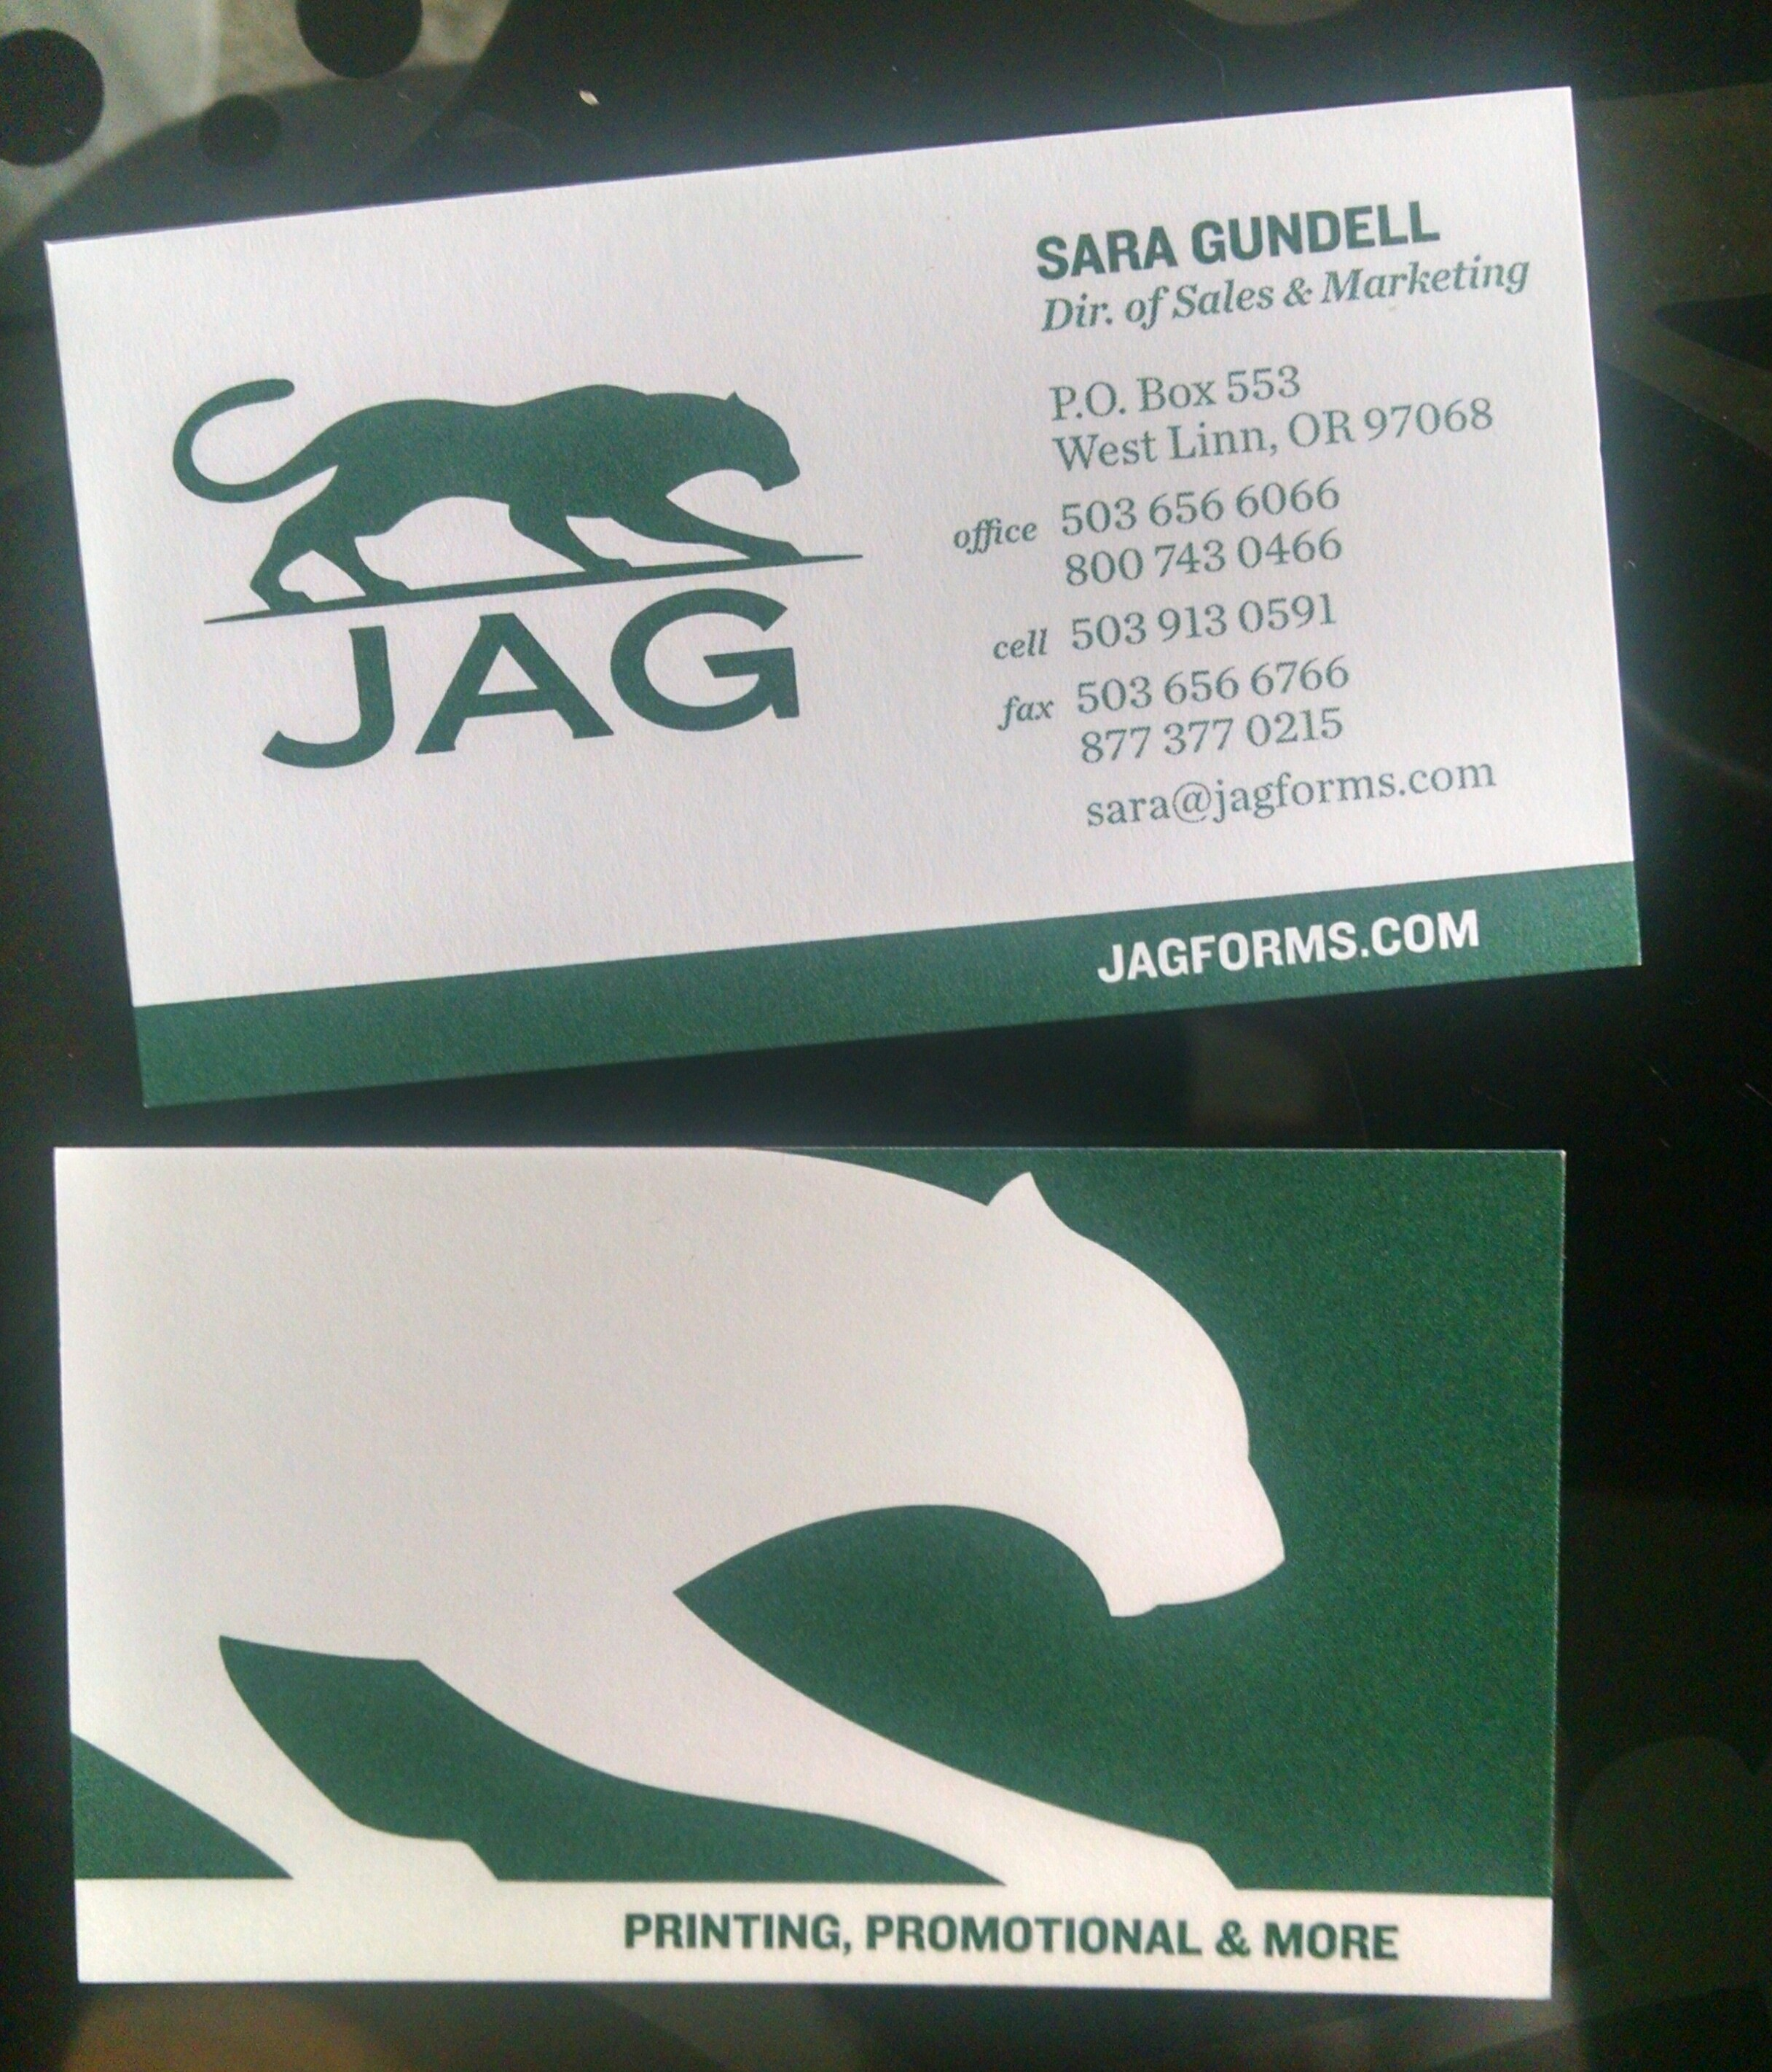 Business cards splurge vs conserve jag forms jag biz cards colourmoves Image collections